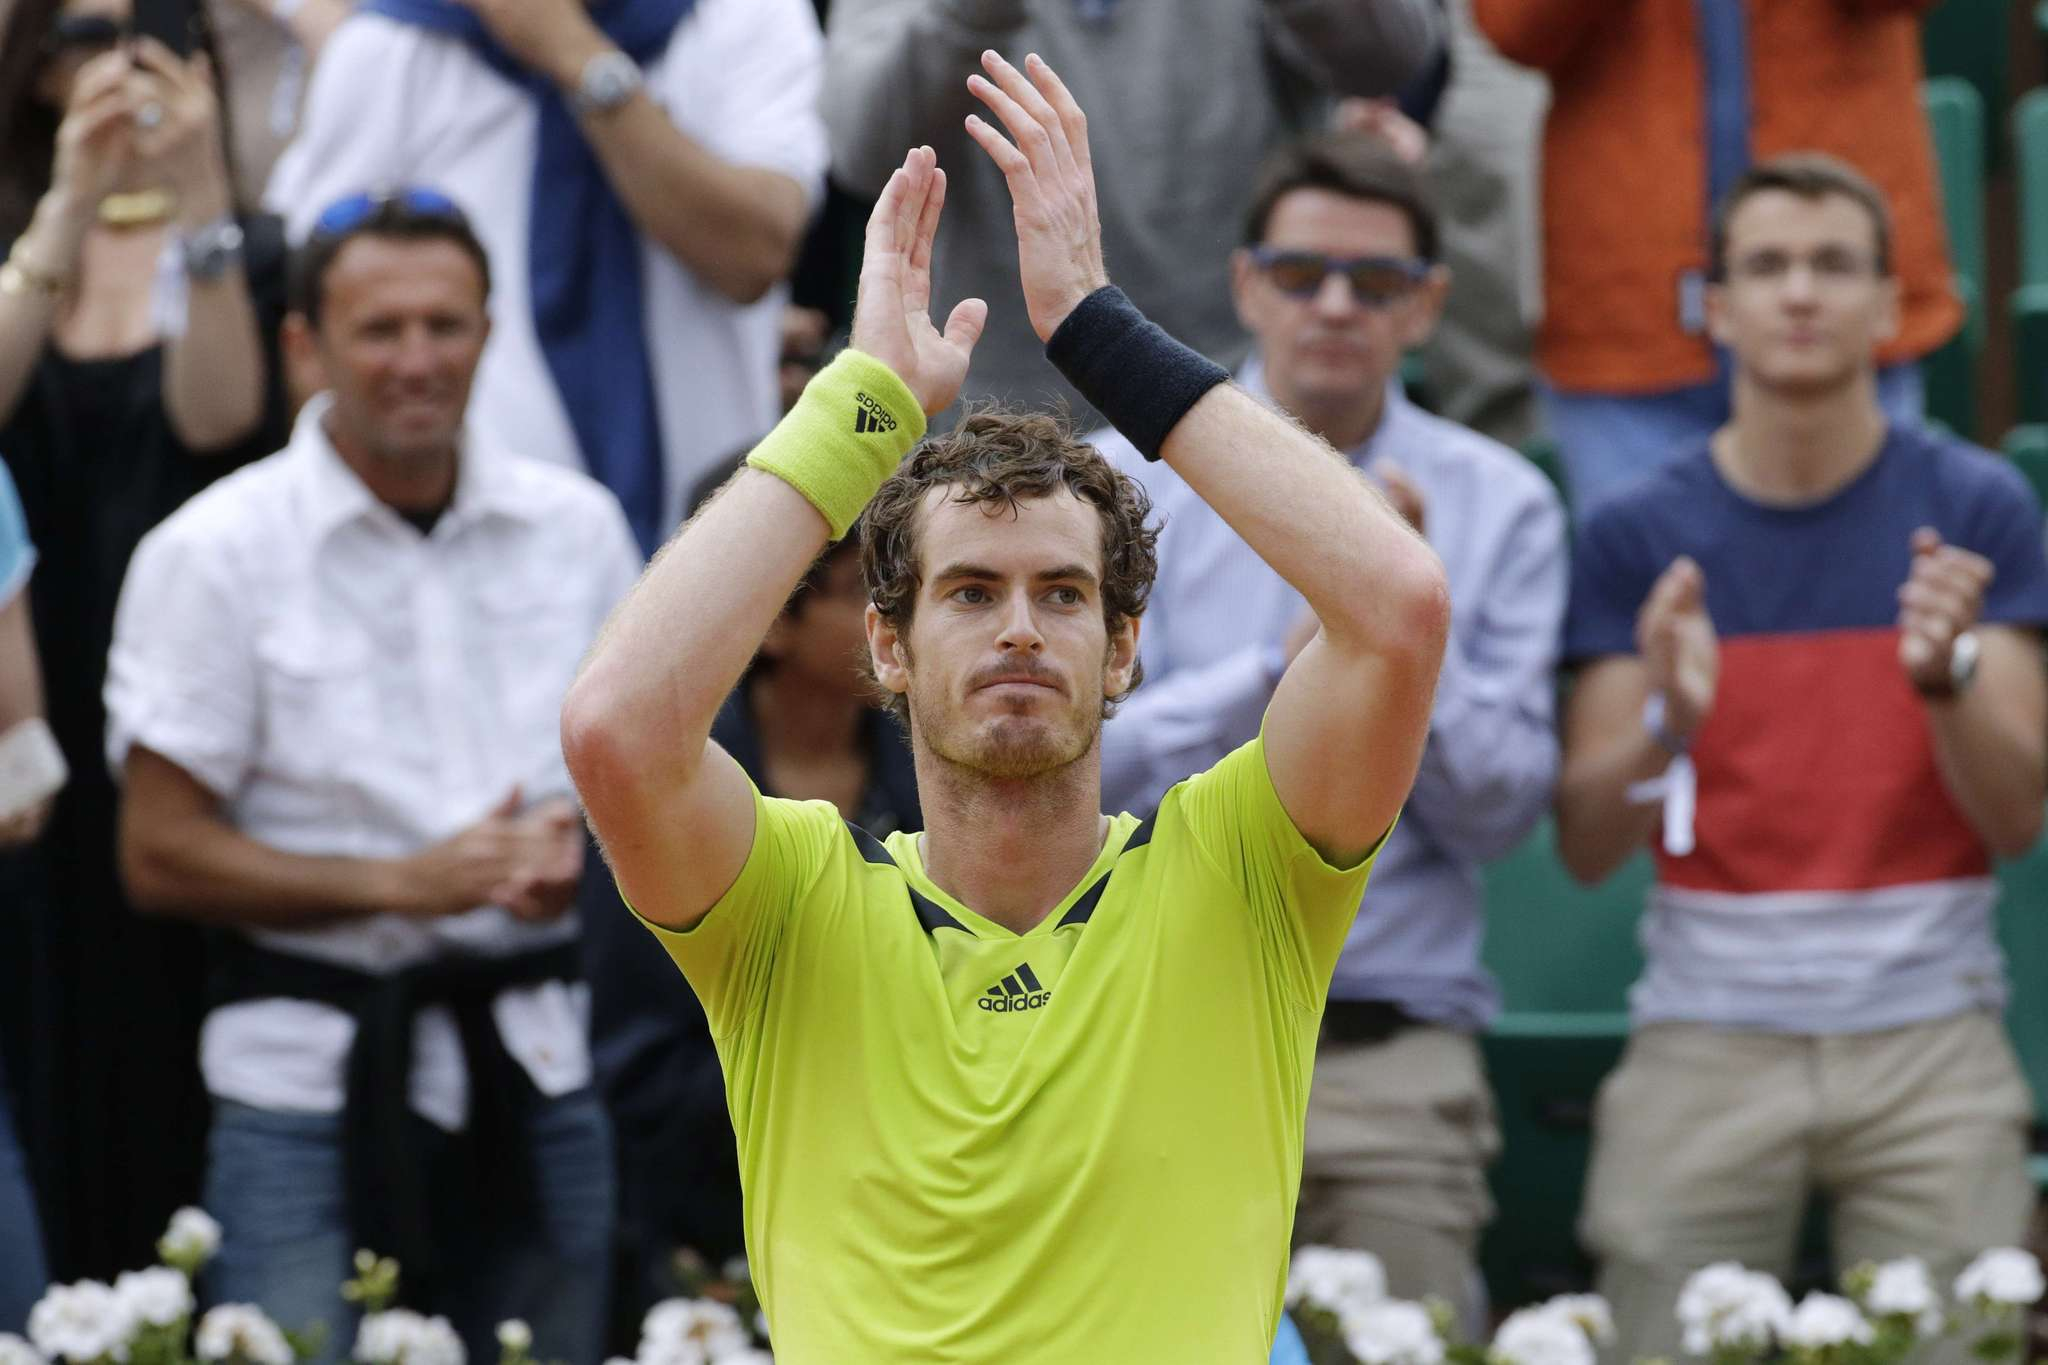 Andy Murray celebrates after winning his French tennis Open third-round match against Germany's Philipp Kohlschreiber.